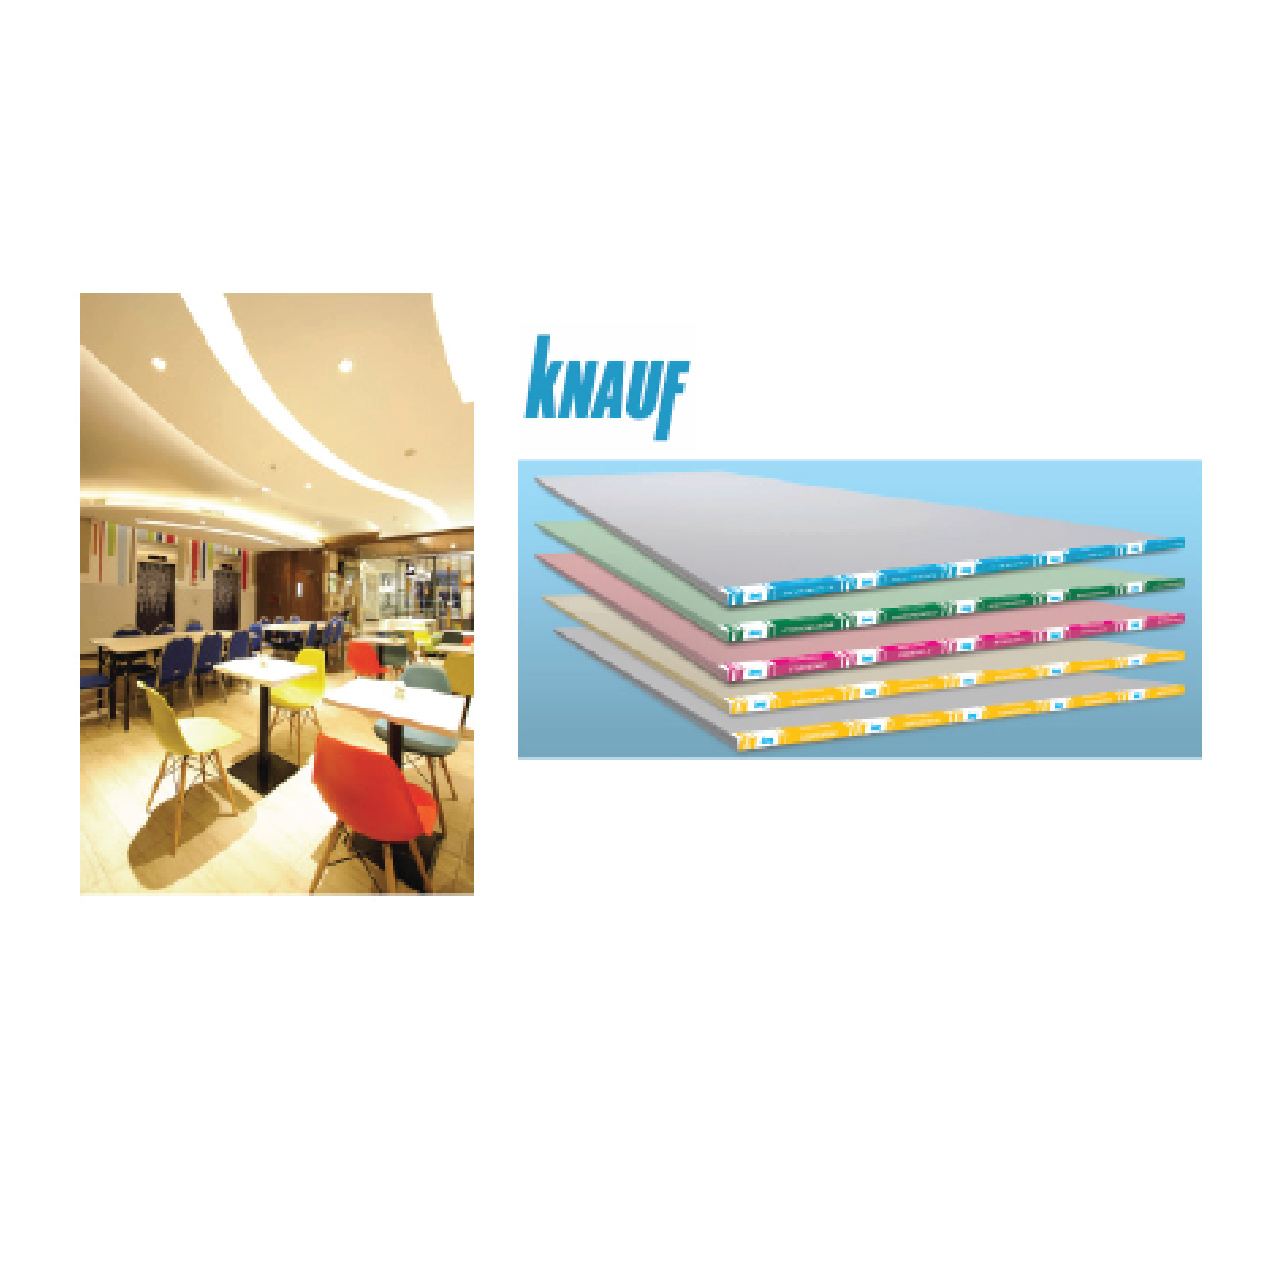 files/product/knauf-gypsumboard-56171d6b1d9fbc9.jpg